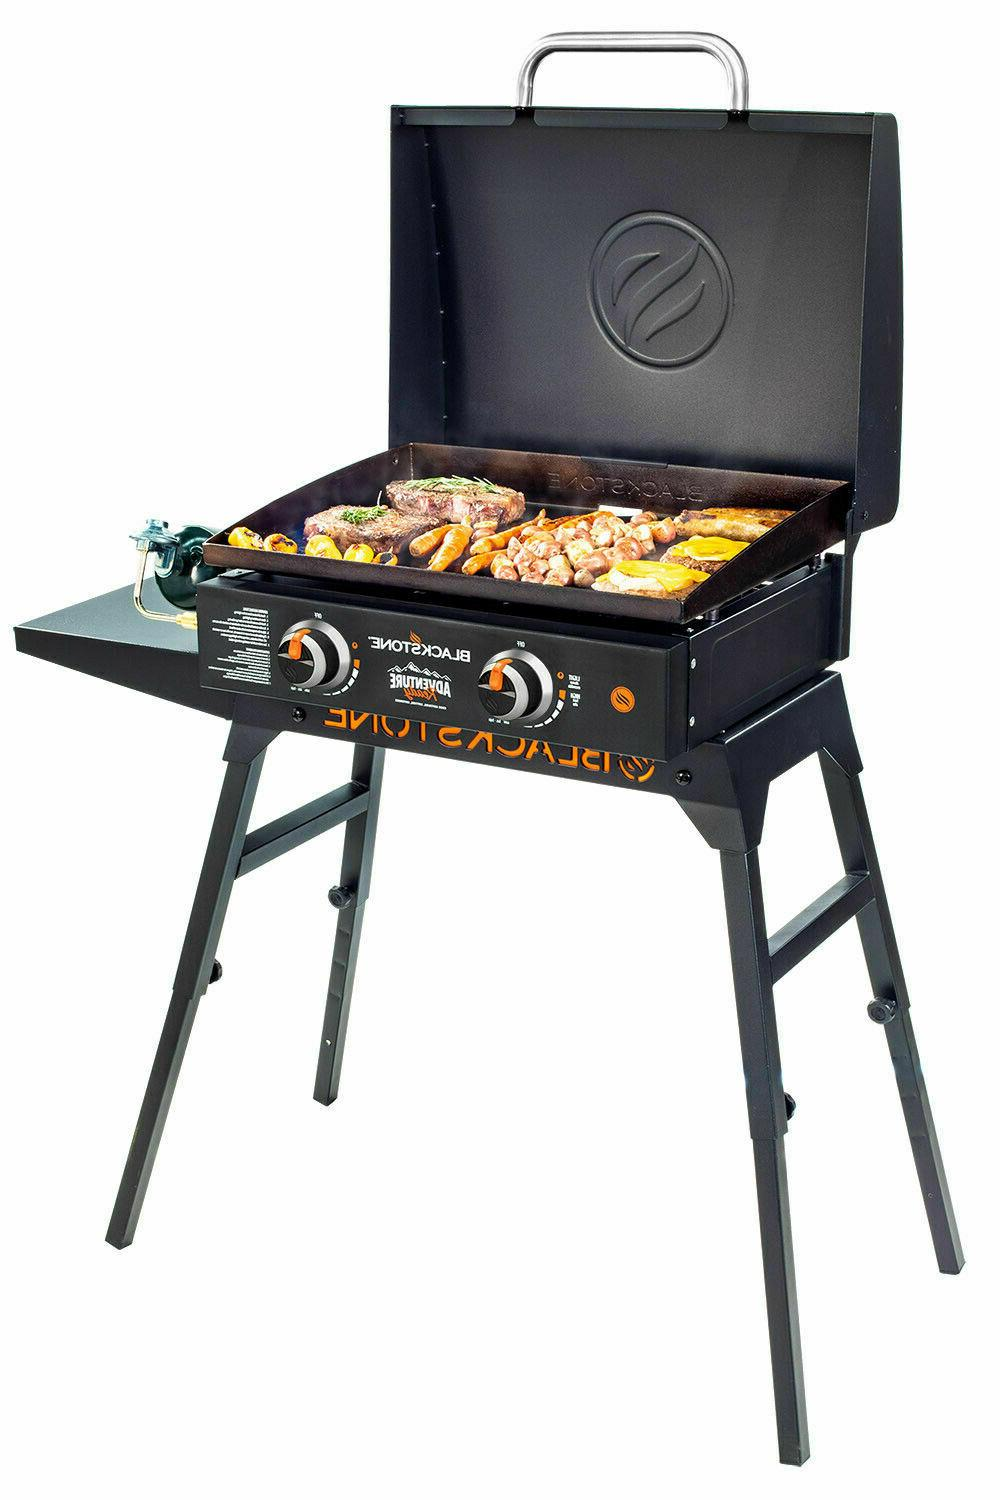 "Portable 22"" Blackstone Adventure Ready LP Gas Griddle Grill"